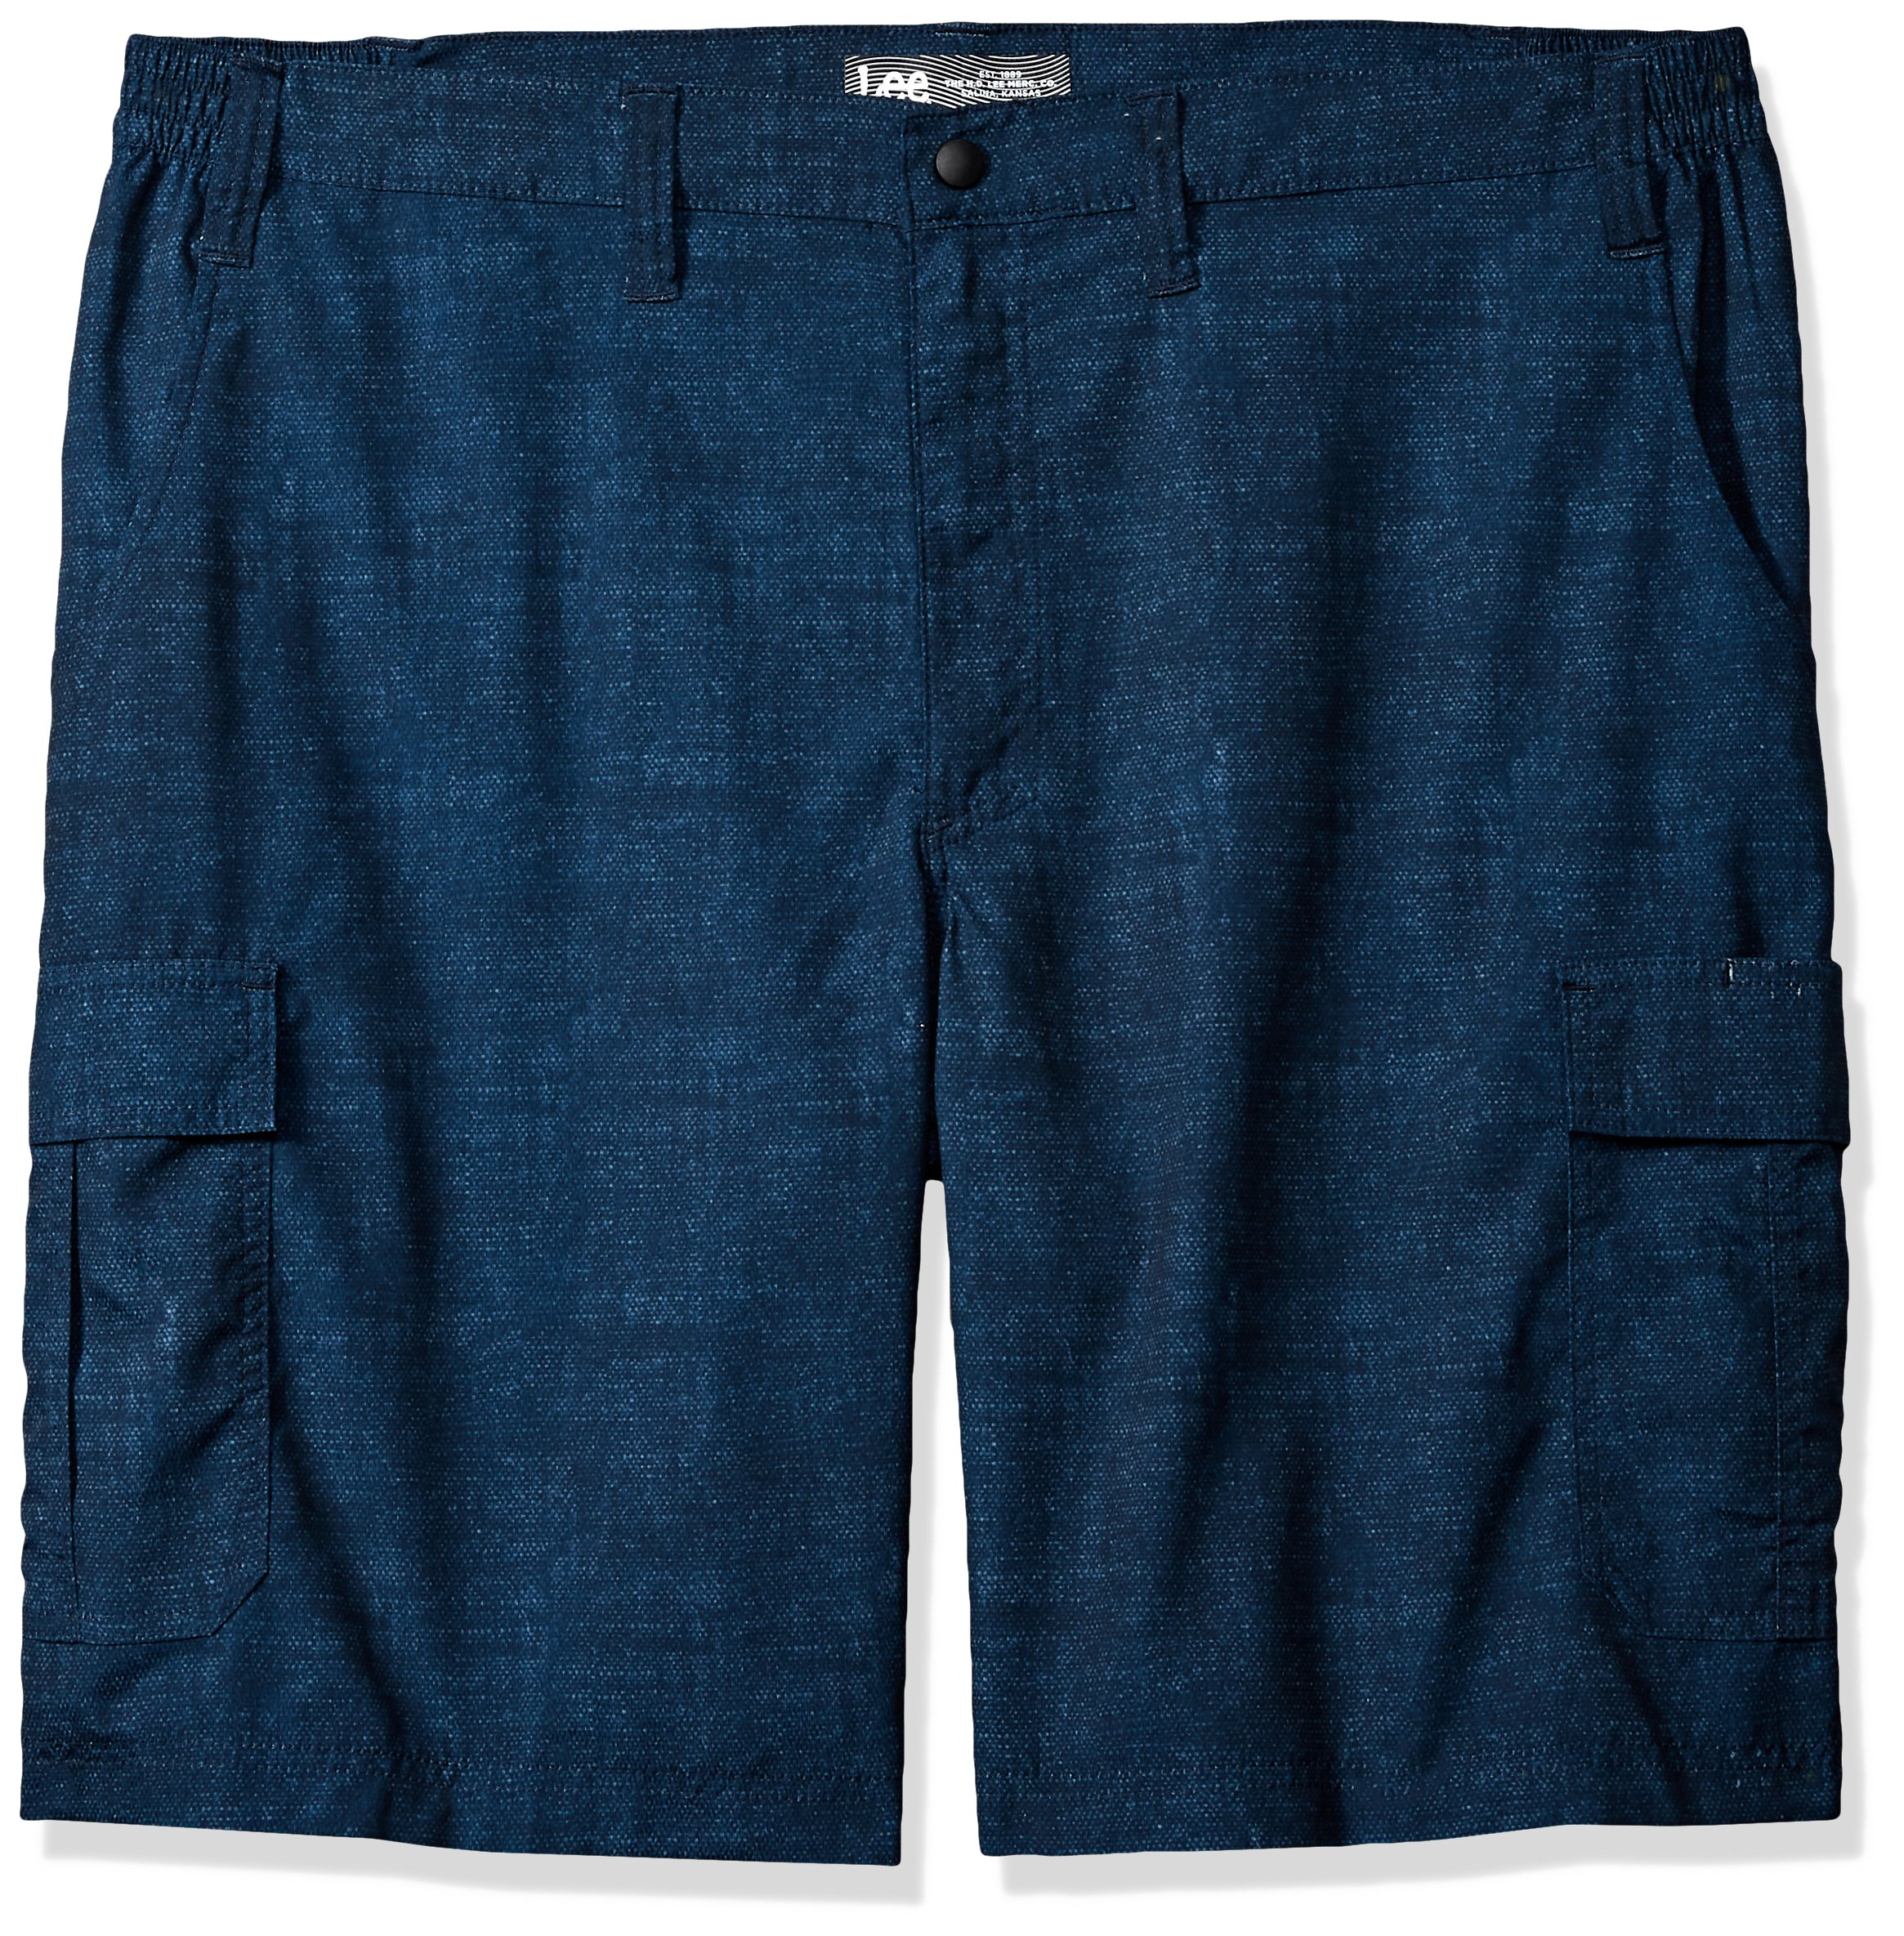 LEE Men's Big and Tall Performance Cargo Short, Navy Textured Dot, 46